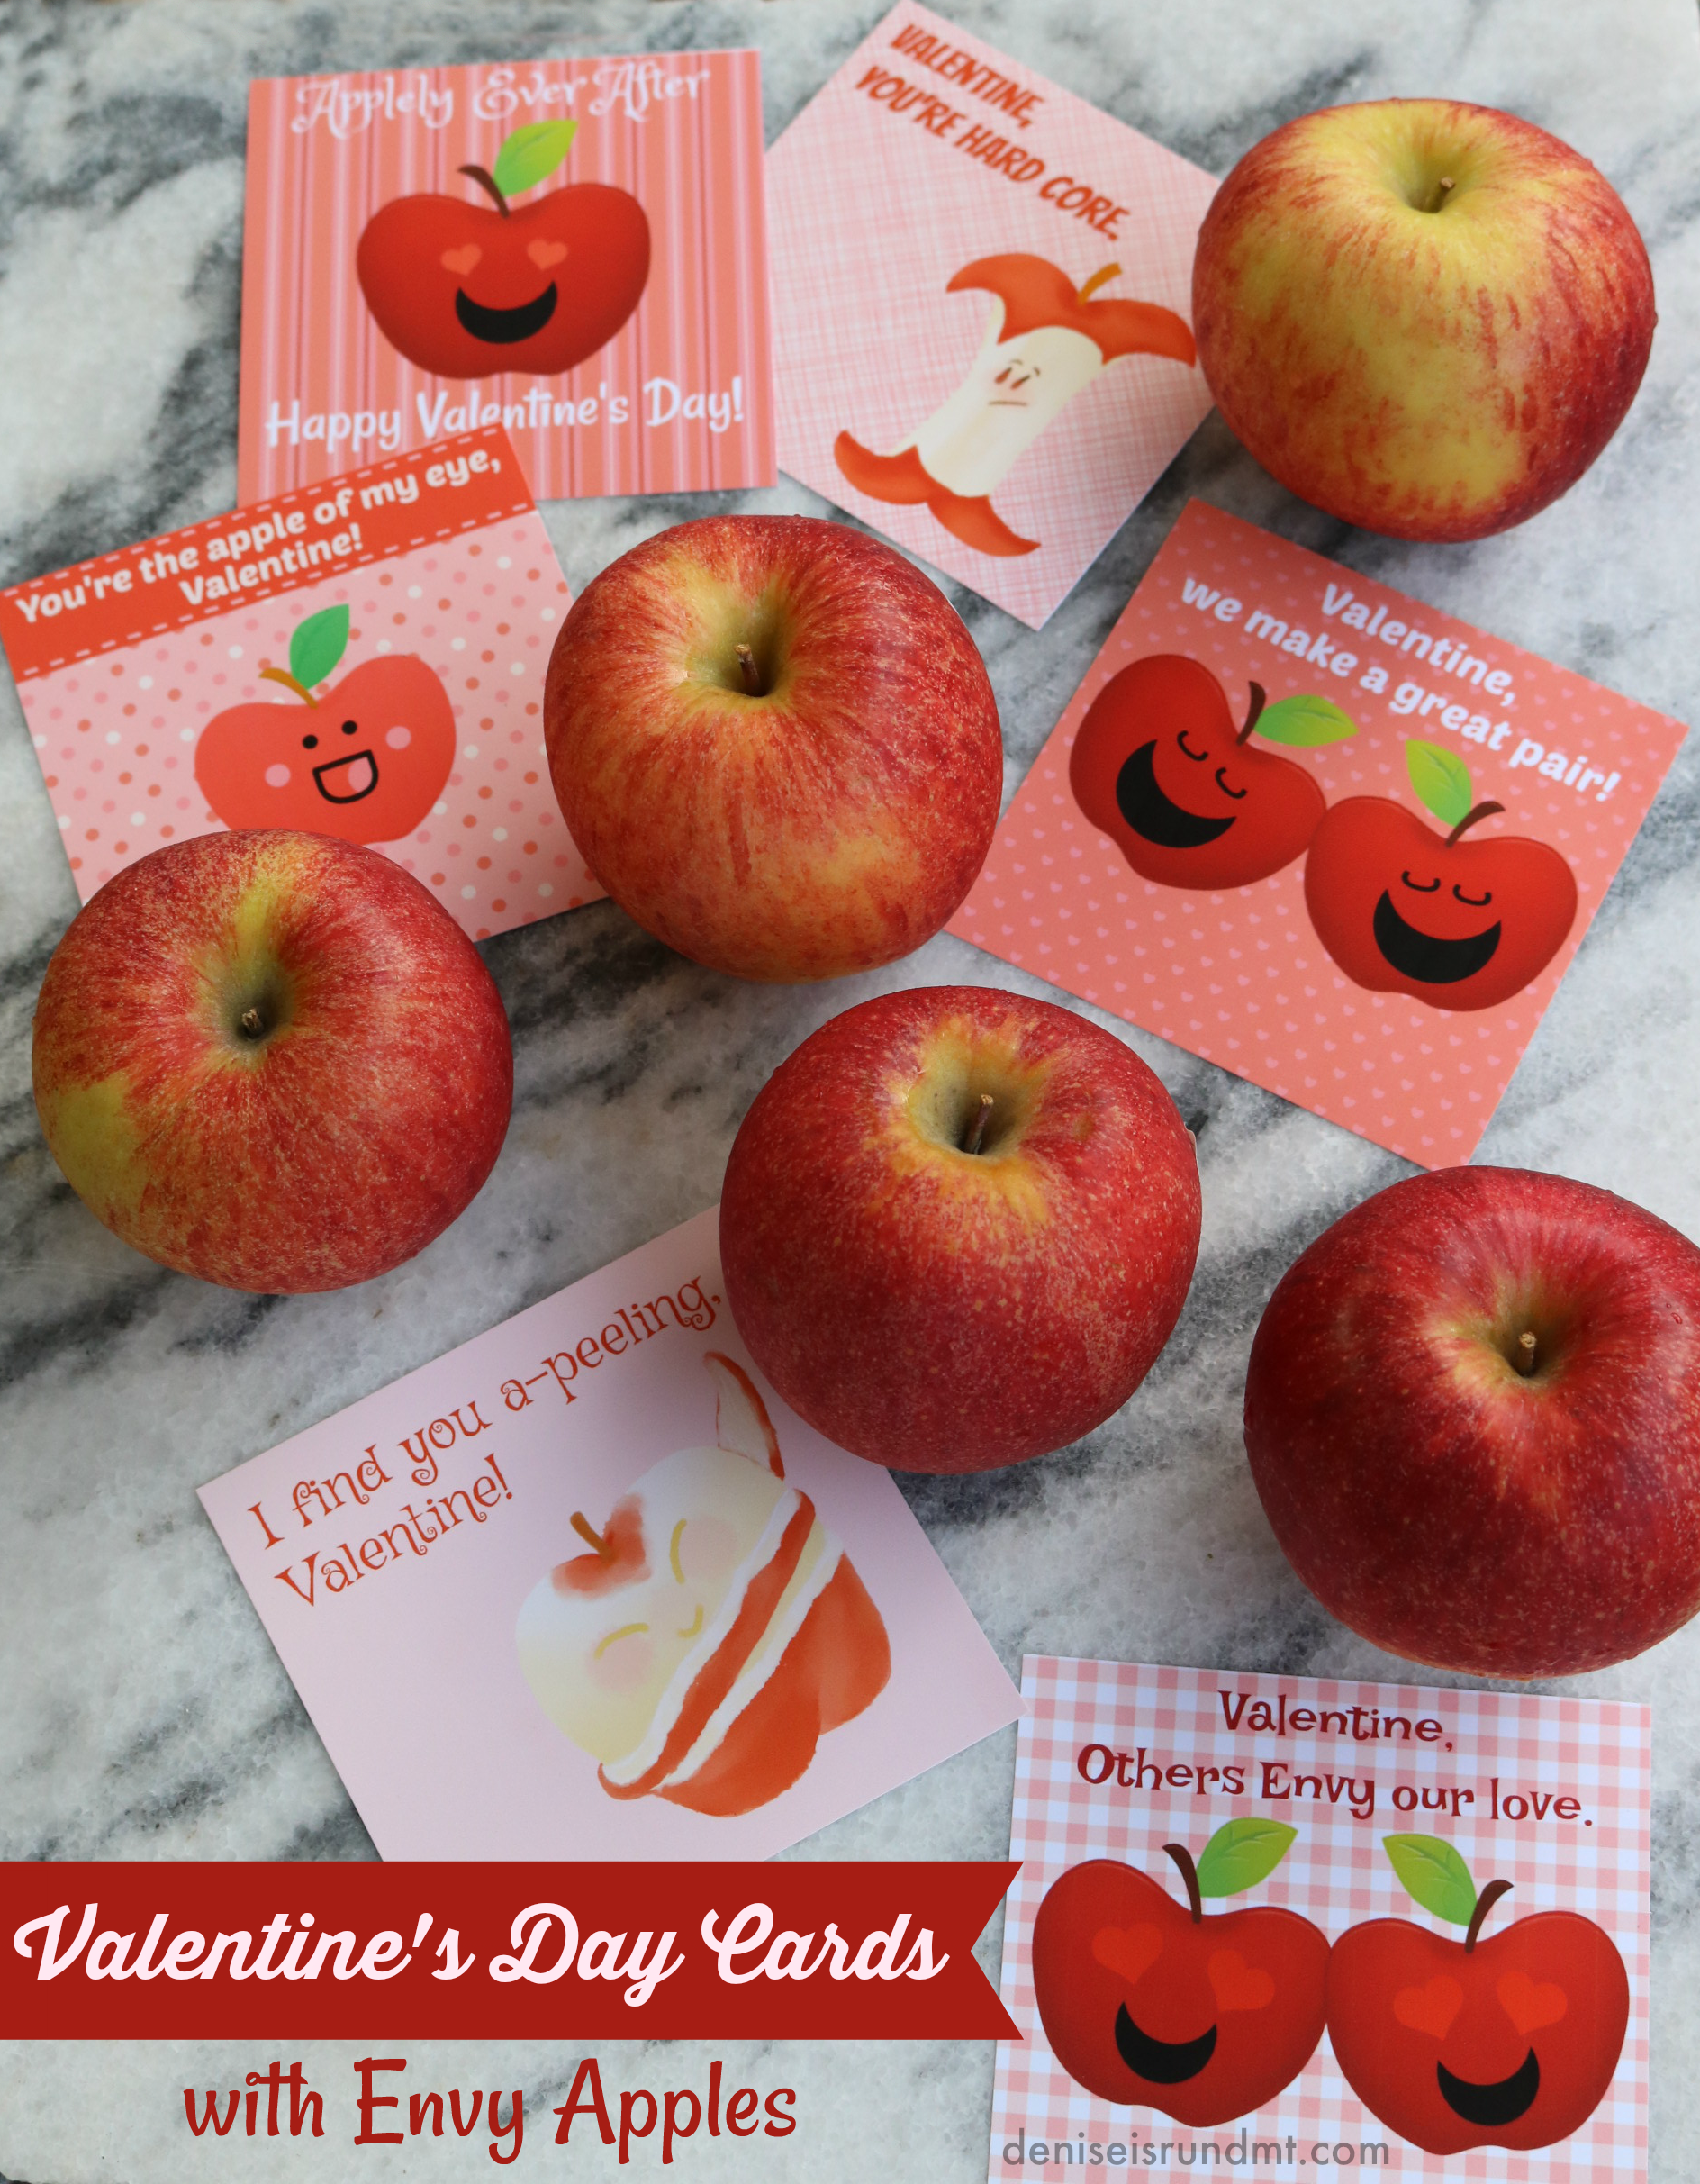 Heart Healthy Valentine S Day Cards With Envy Apples Run Dmt